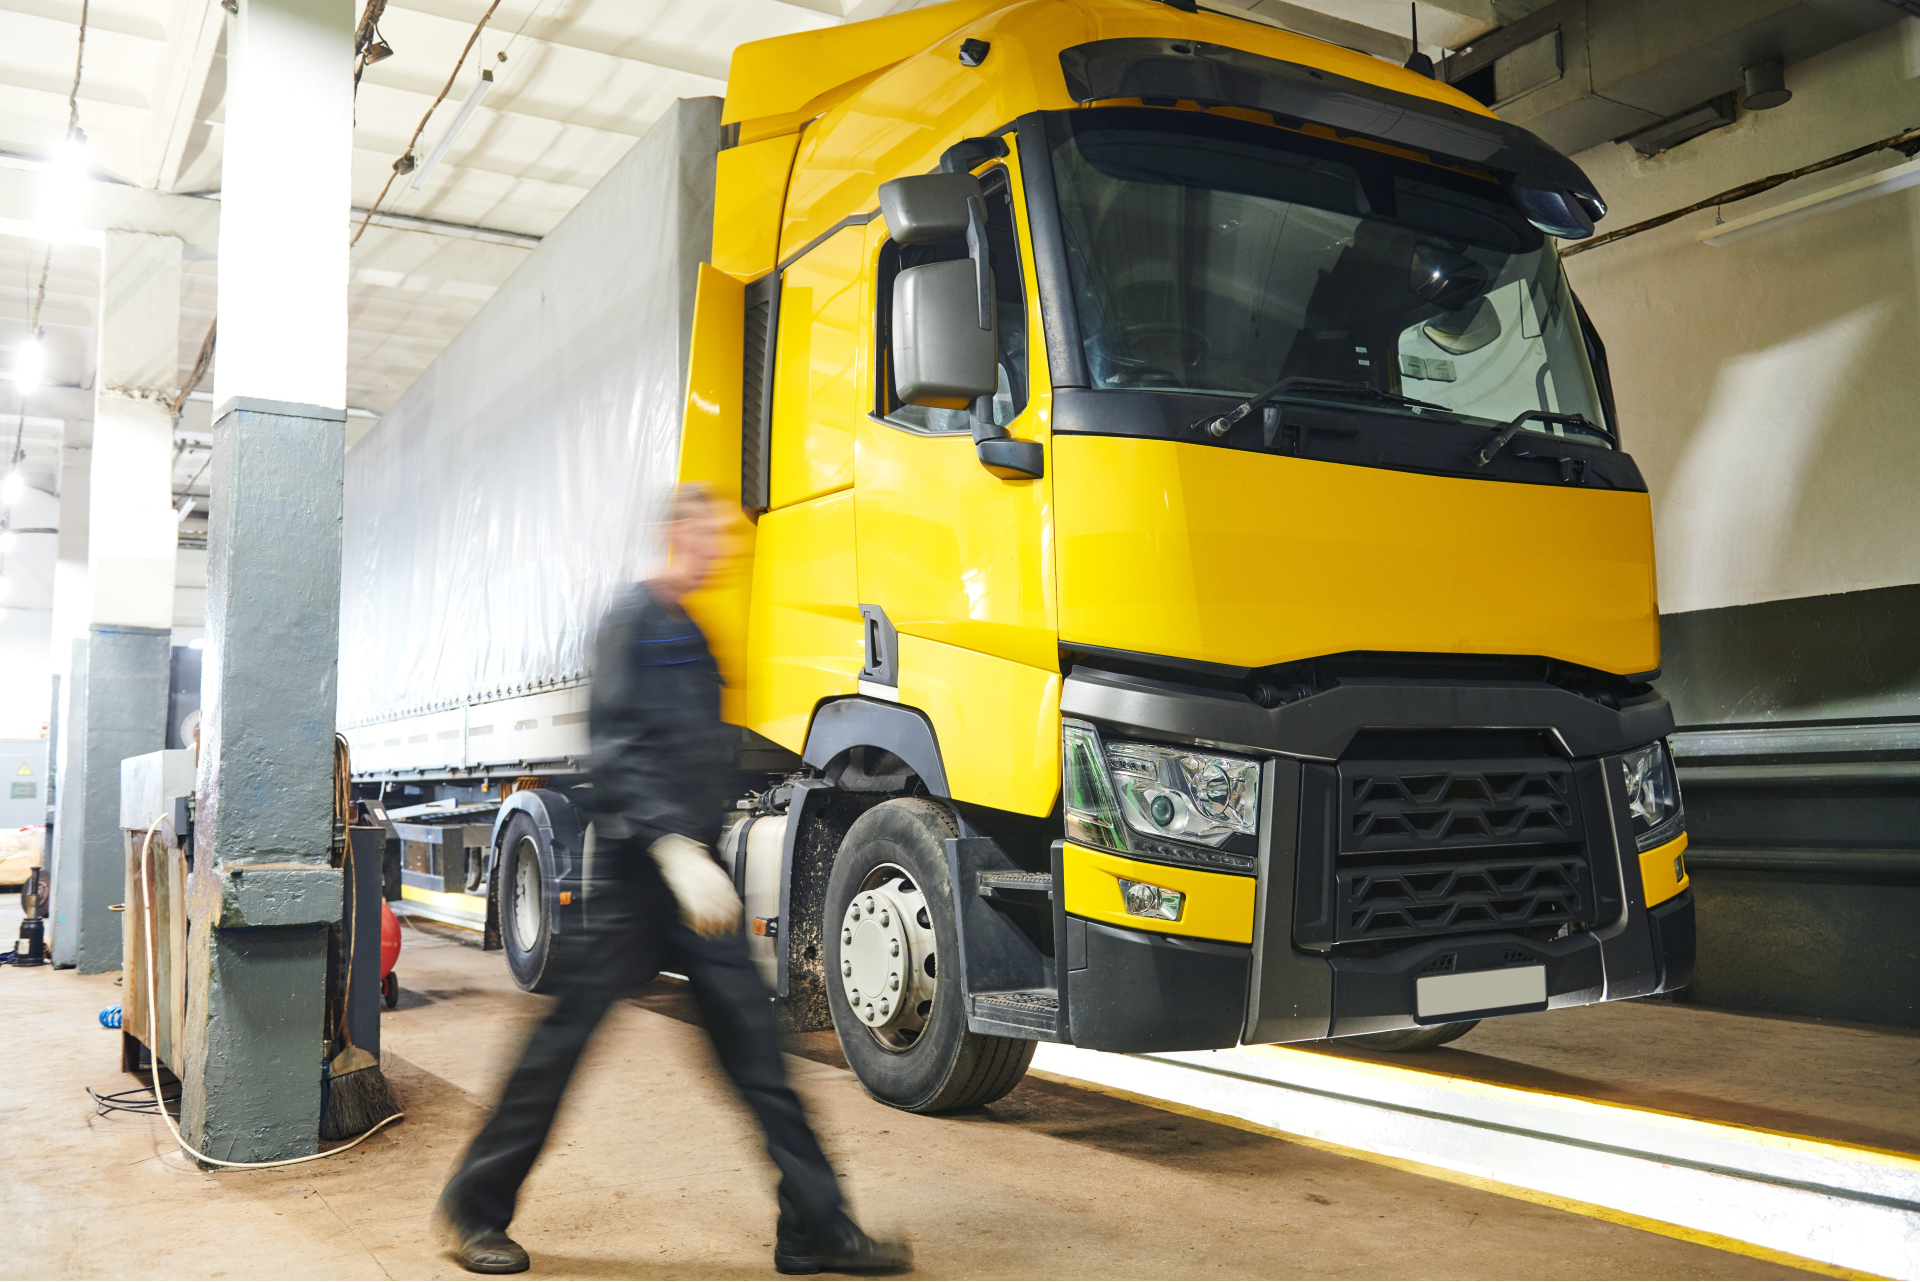 Lorry in test centre